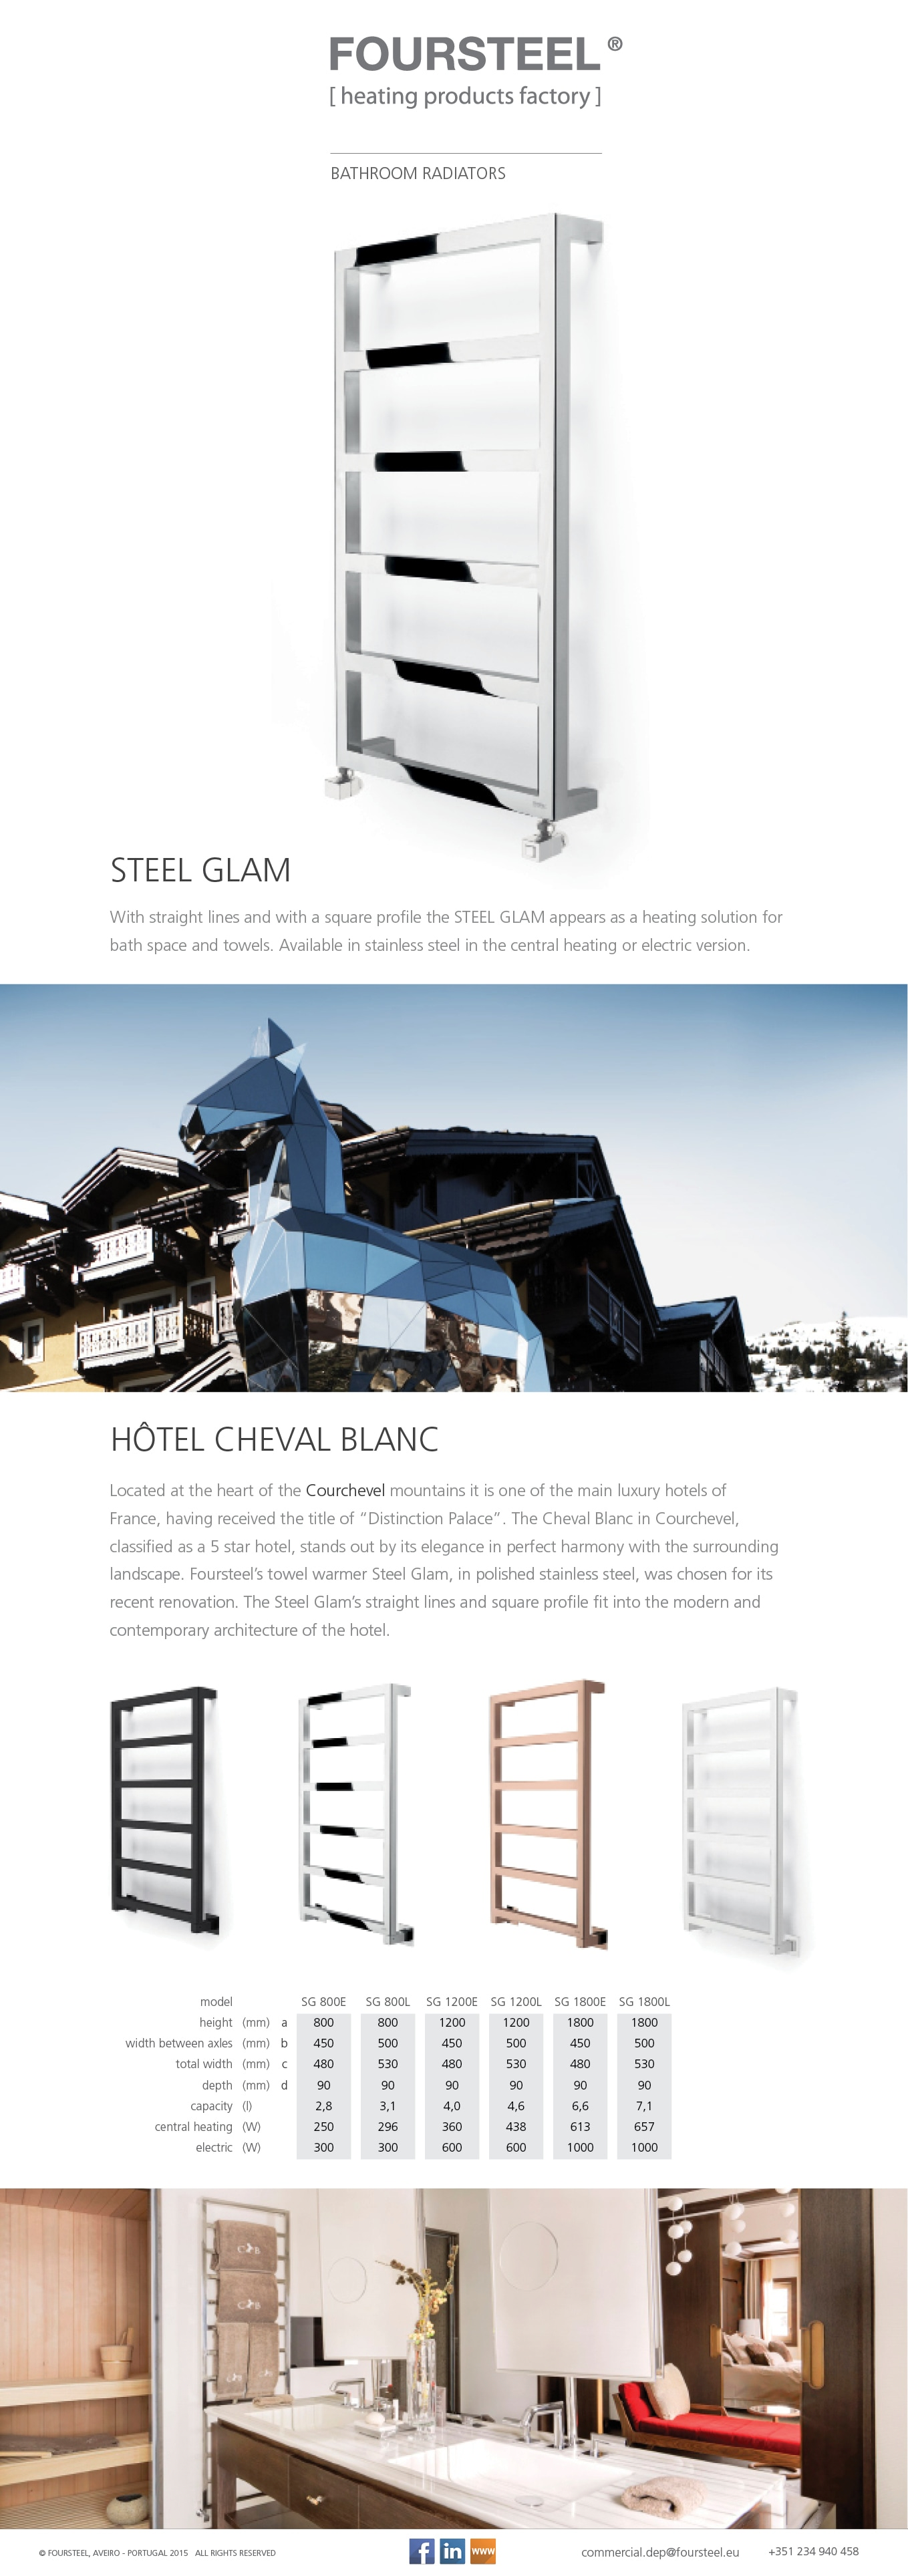 steel glam - nov 2015